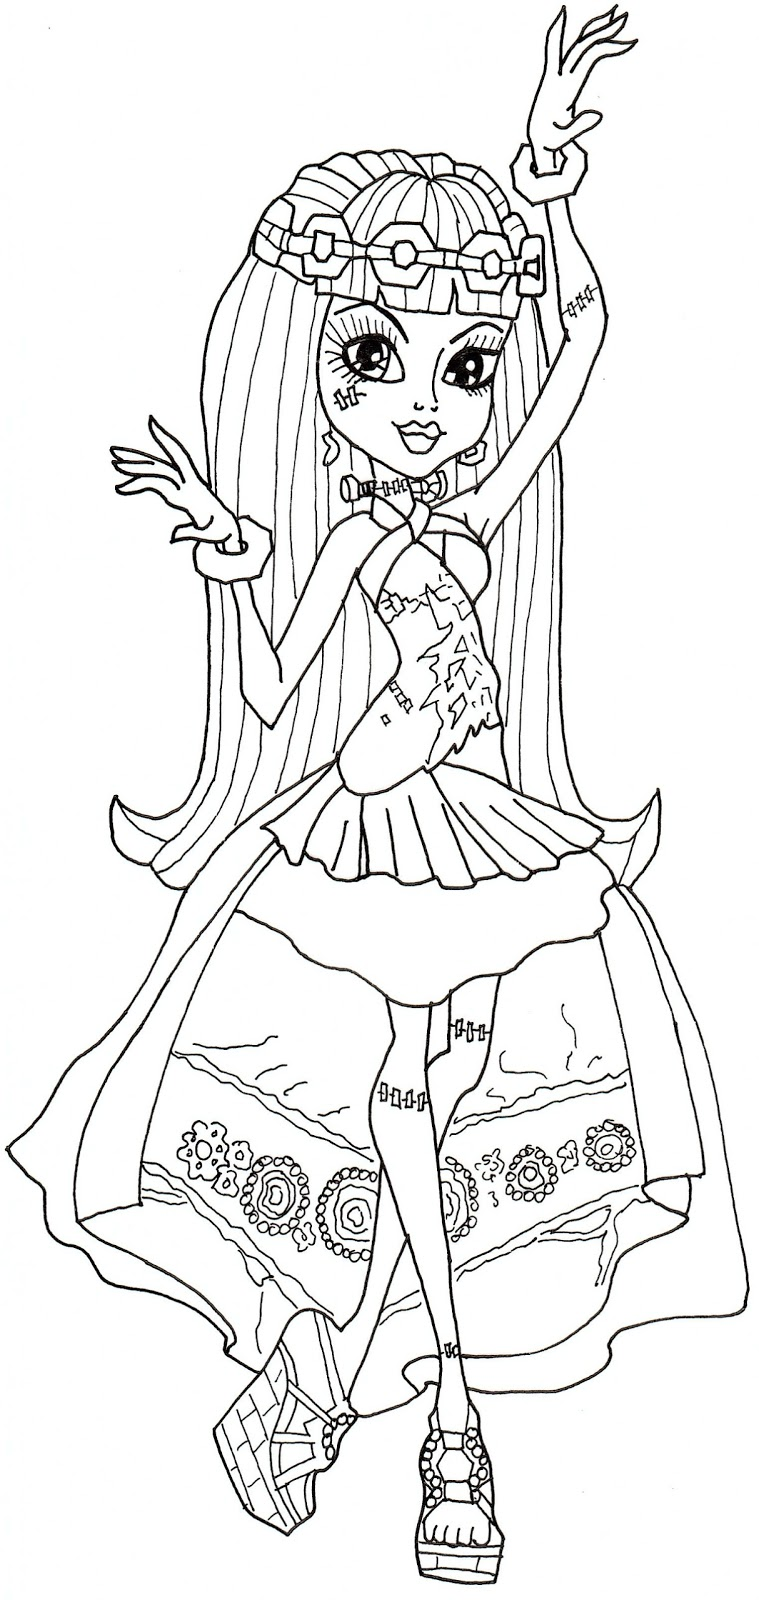 monster high color pages free - free printable monster high coloring pages june 2013